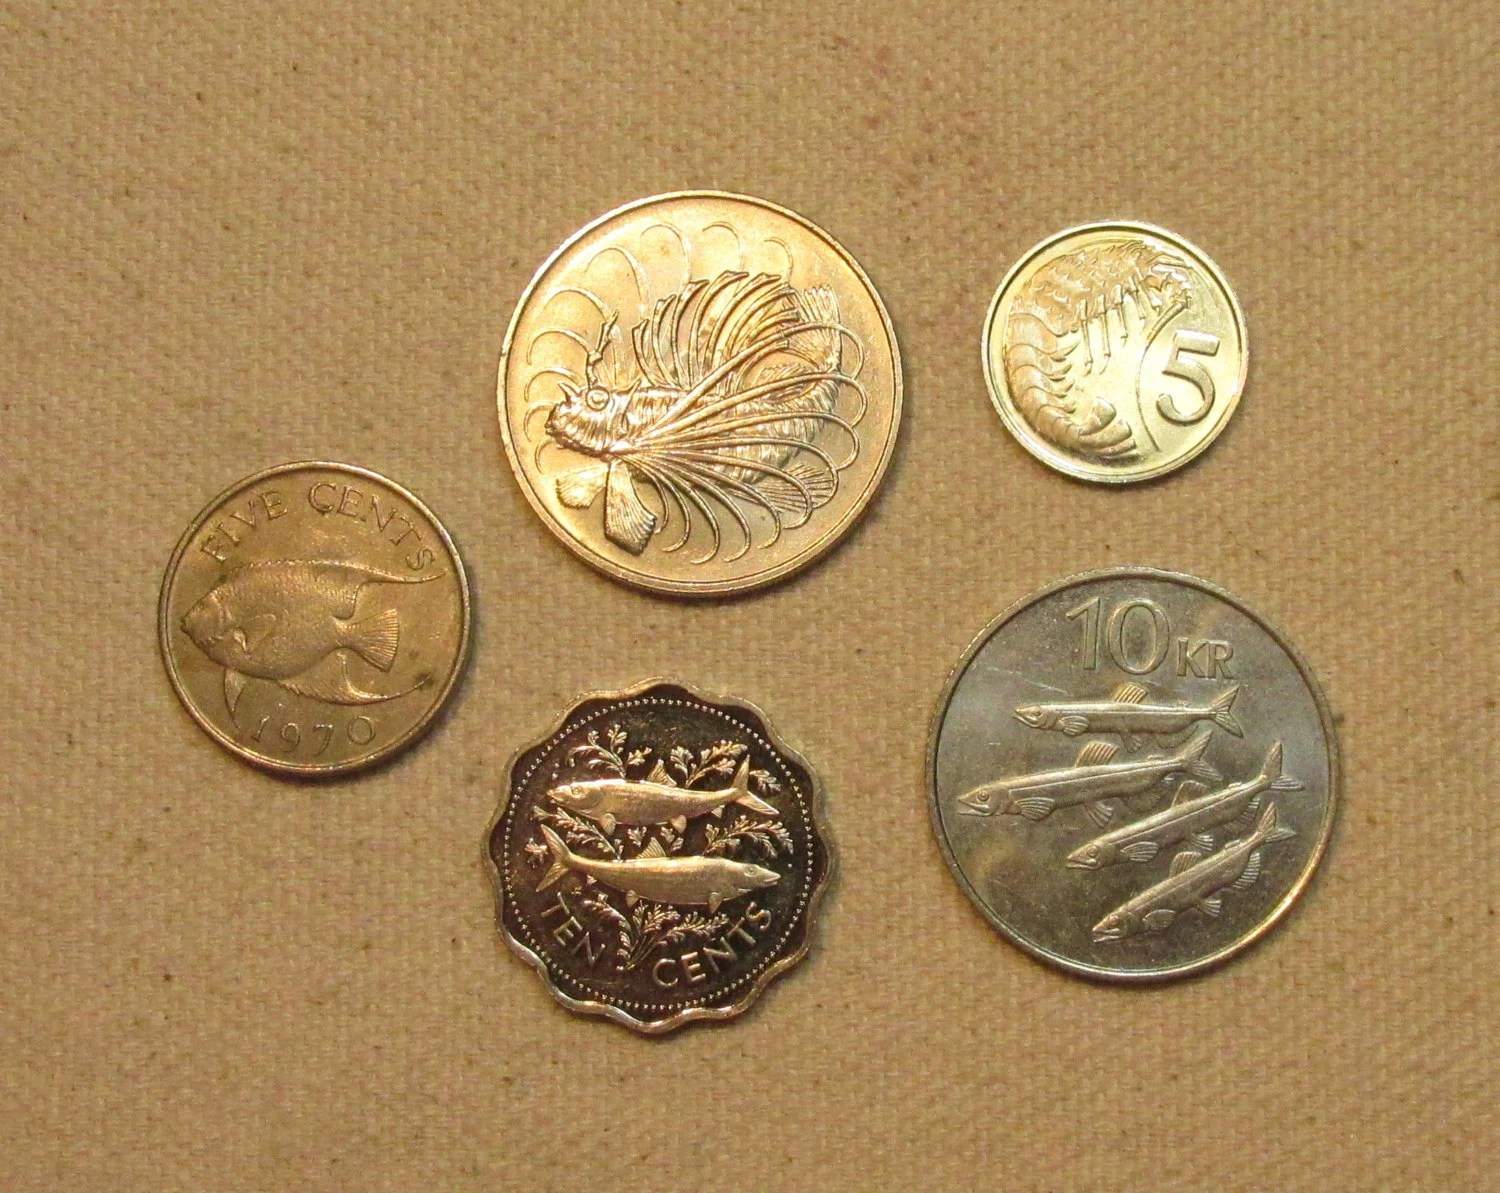 Fish Sealife 5 Coin Lot Fishing Sea Motif Coins By